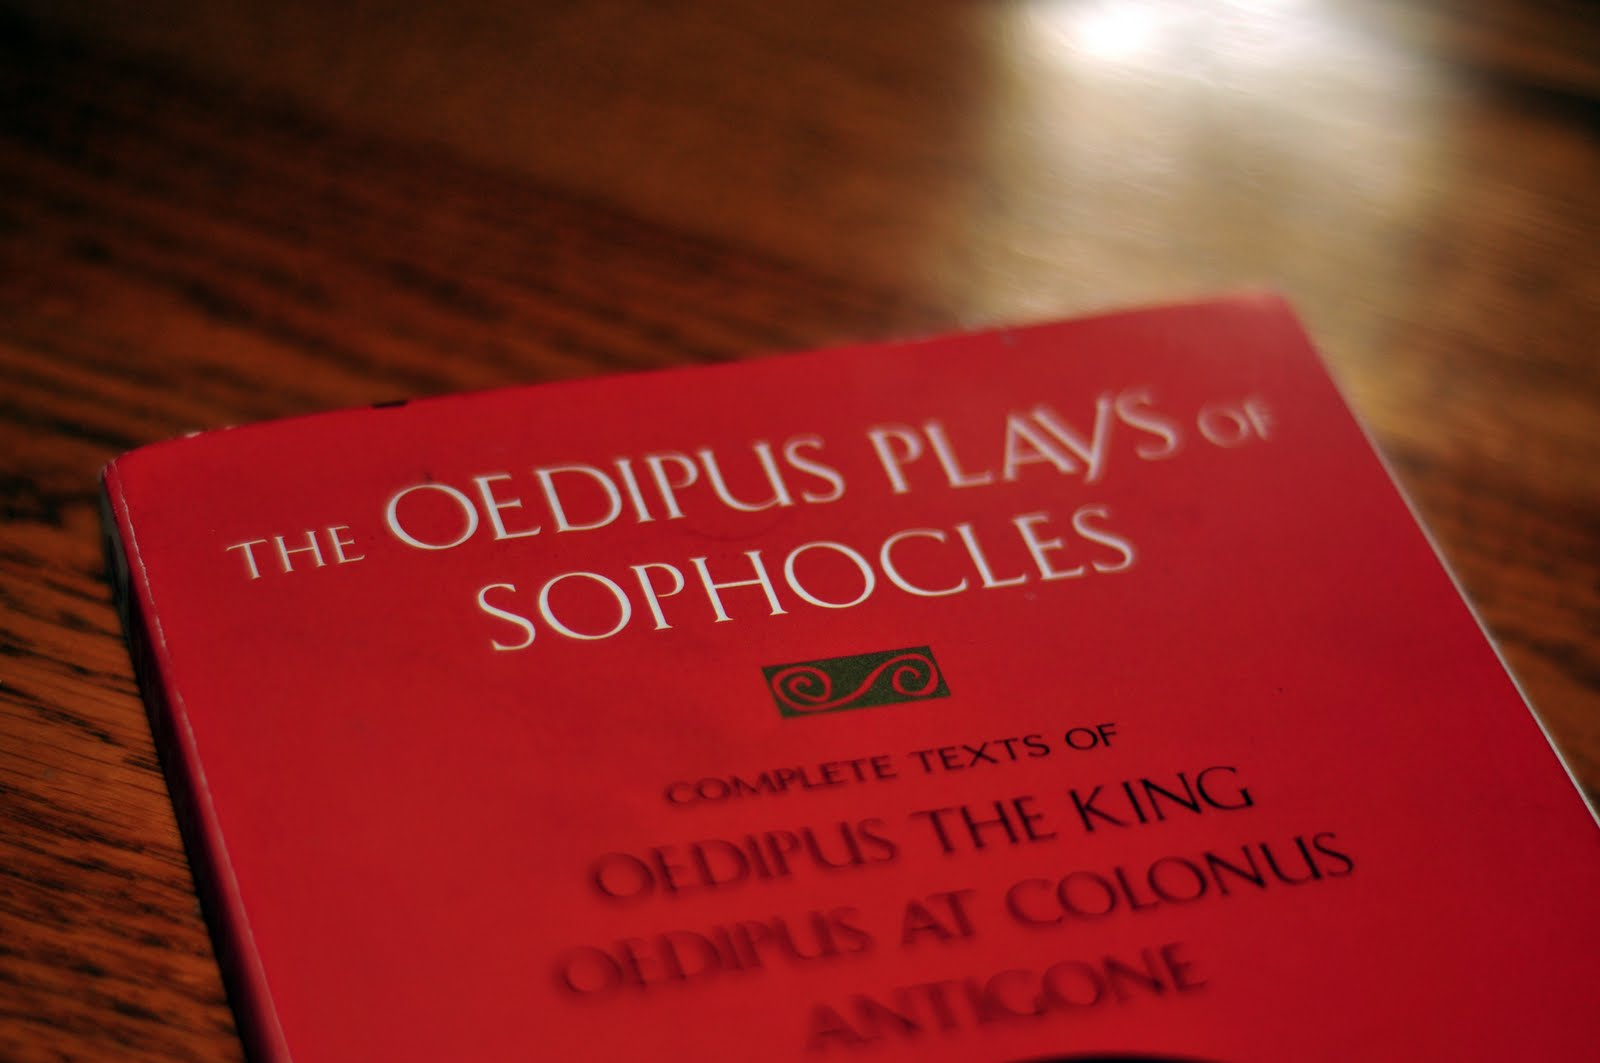 a focus on oedipus in sophocles oedipus the king By: sean sheehan media of sophocles' 'oedipus the king'  this reader's  guide begins with oedipus as a figure from greek mythology before focusing on .